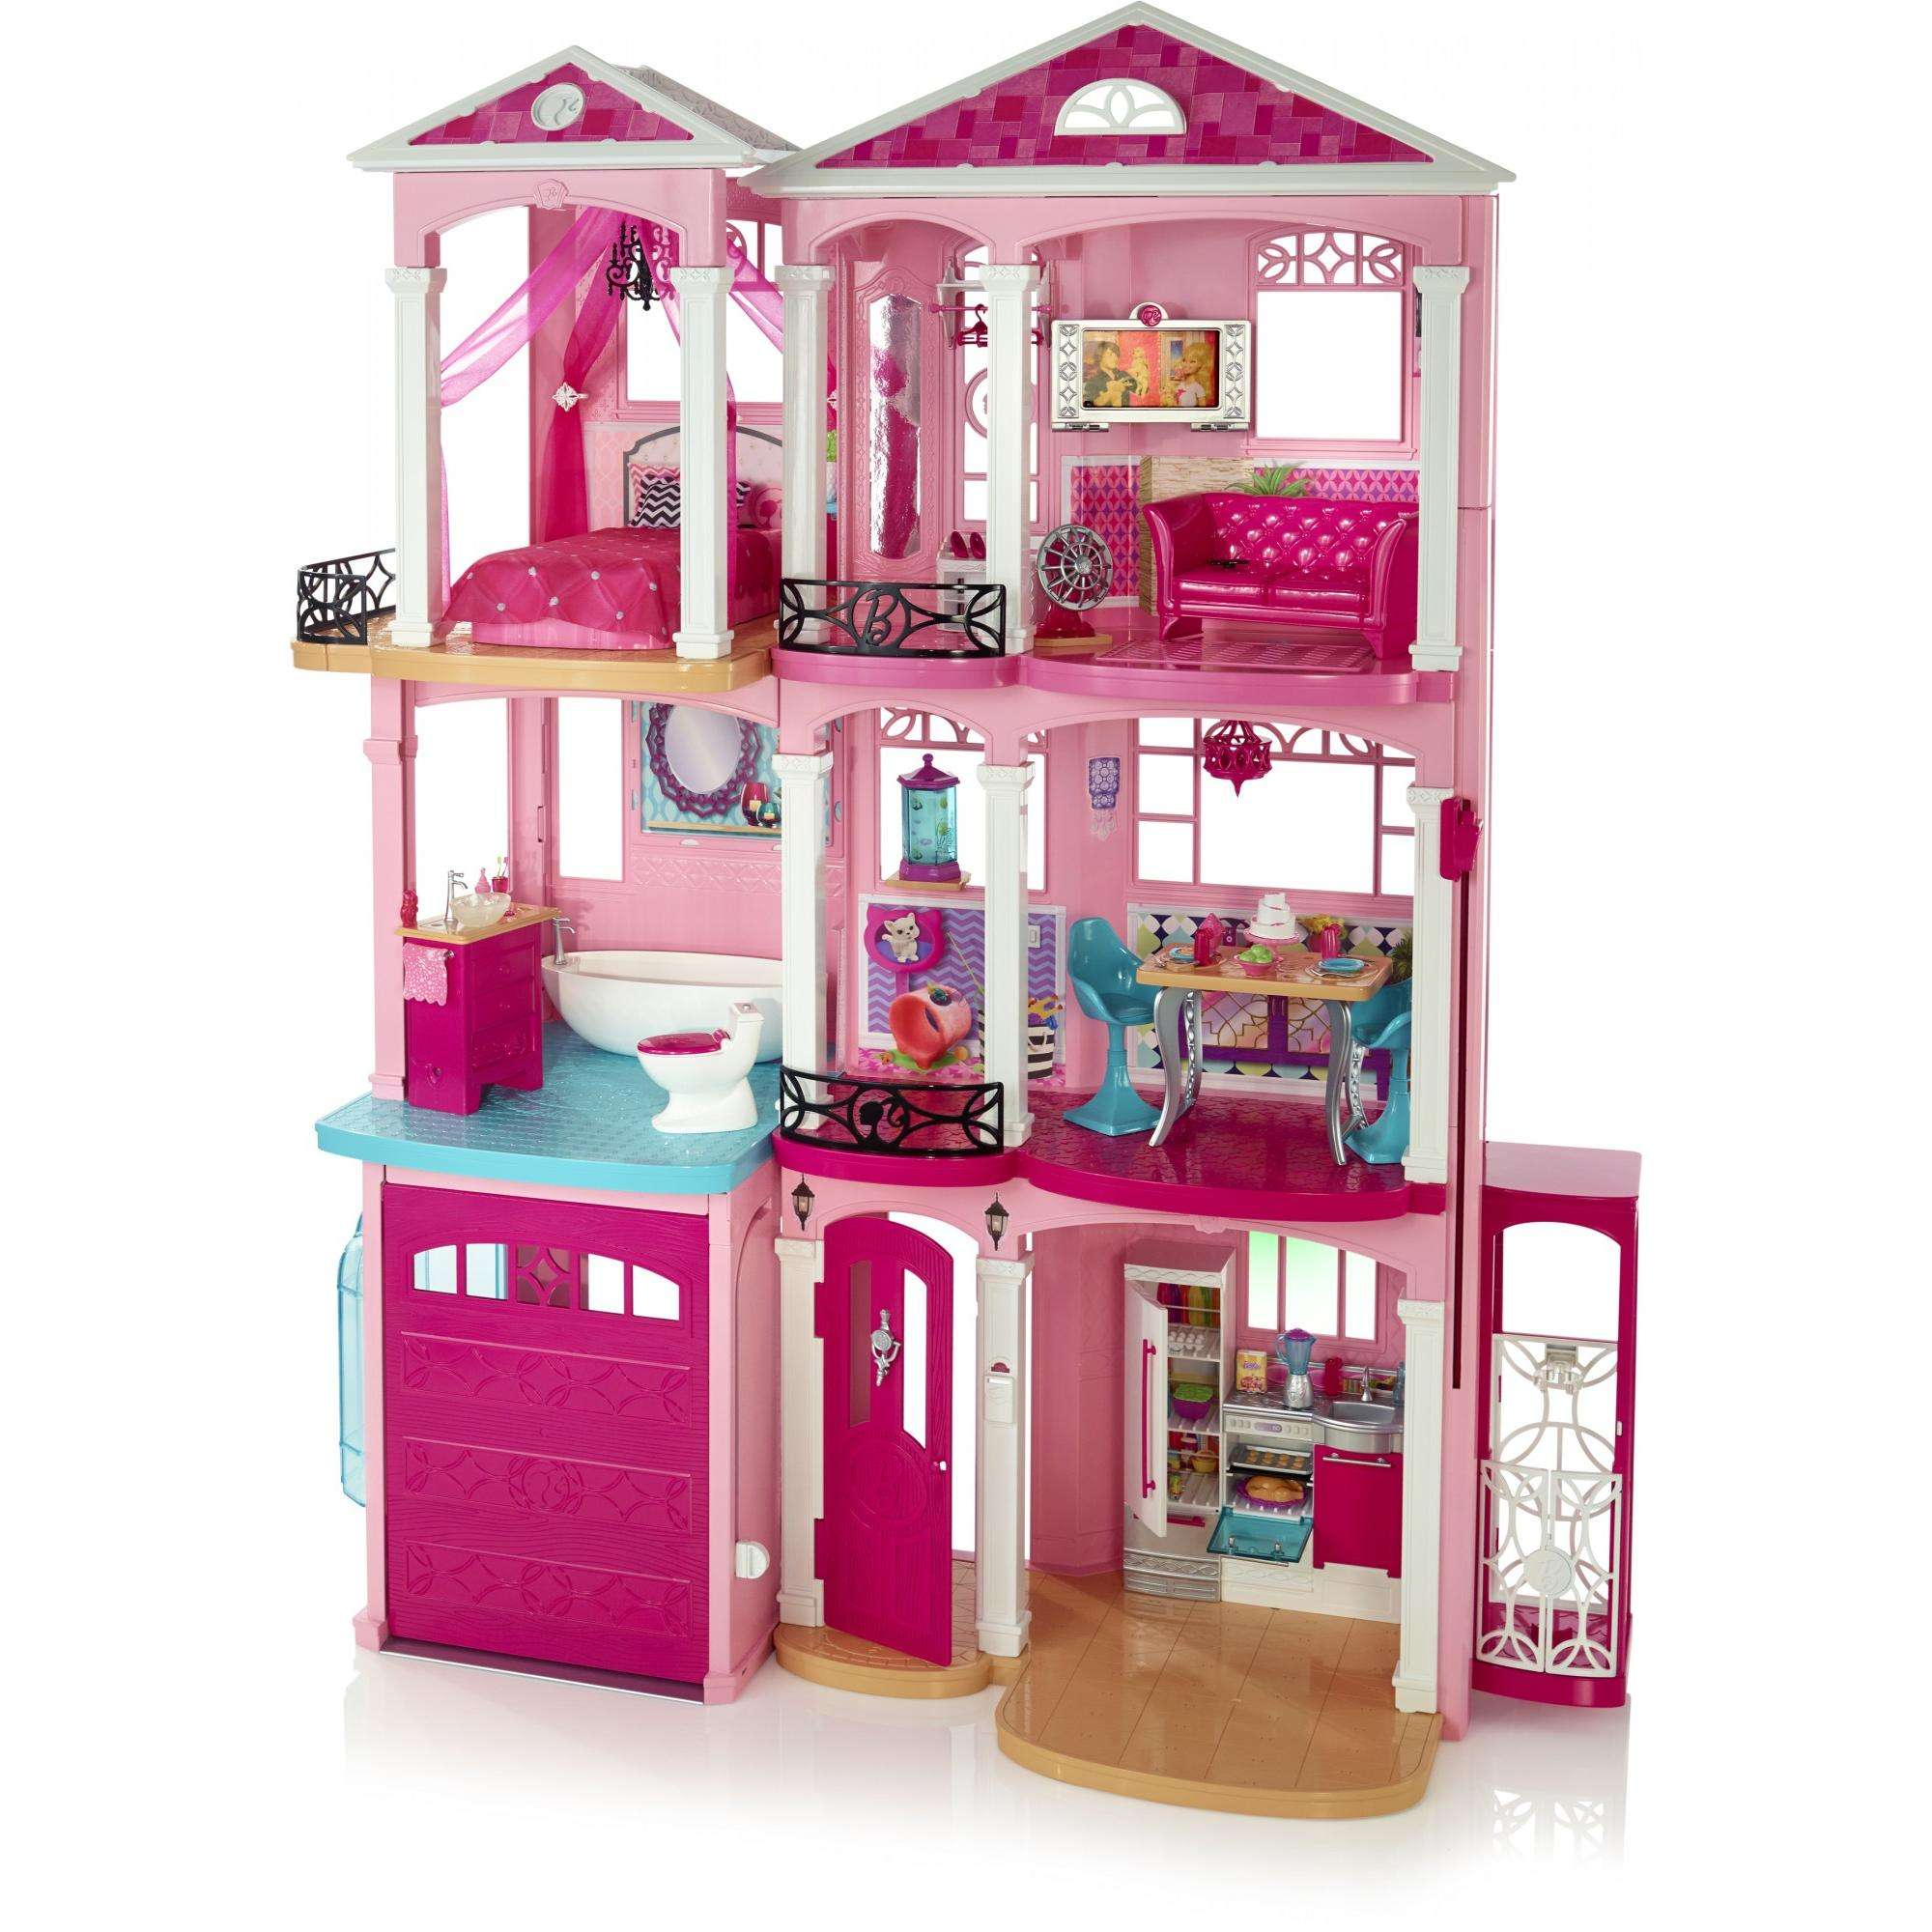 Barbie Dreamhouse Playset With 70 Accessory Pieces Walmart Com